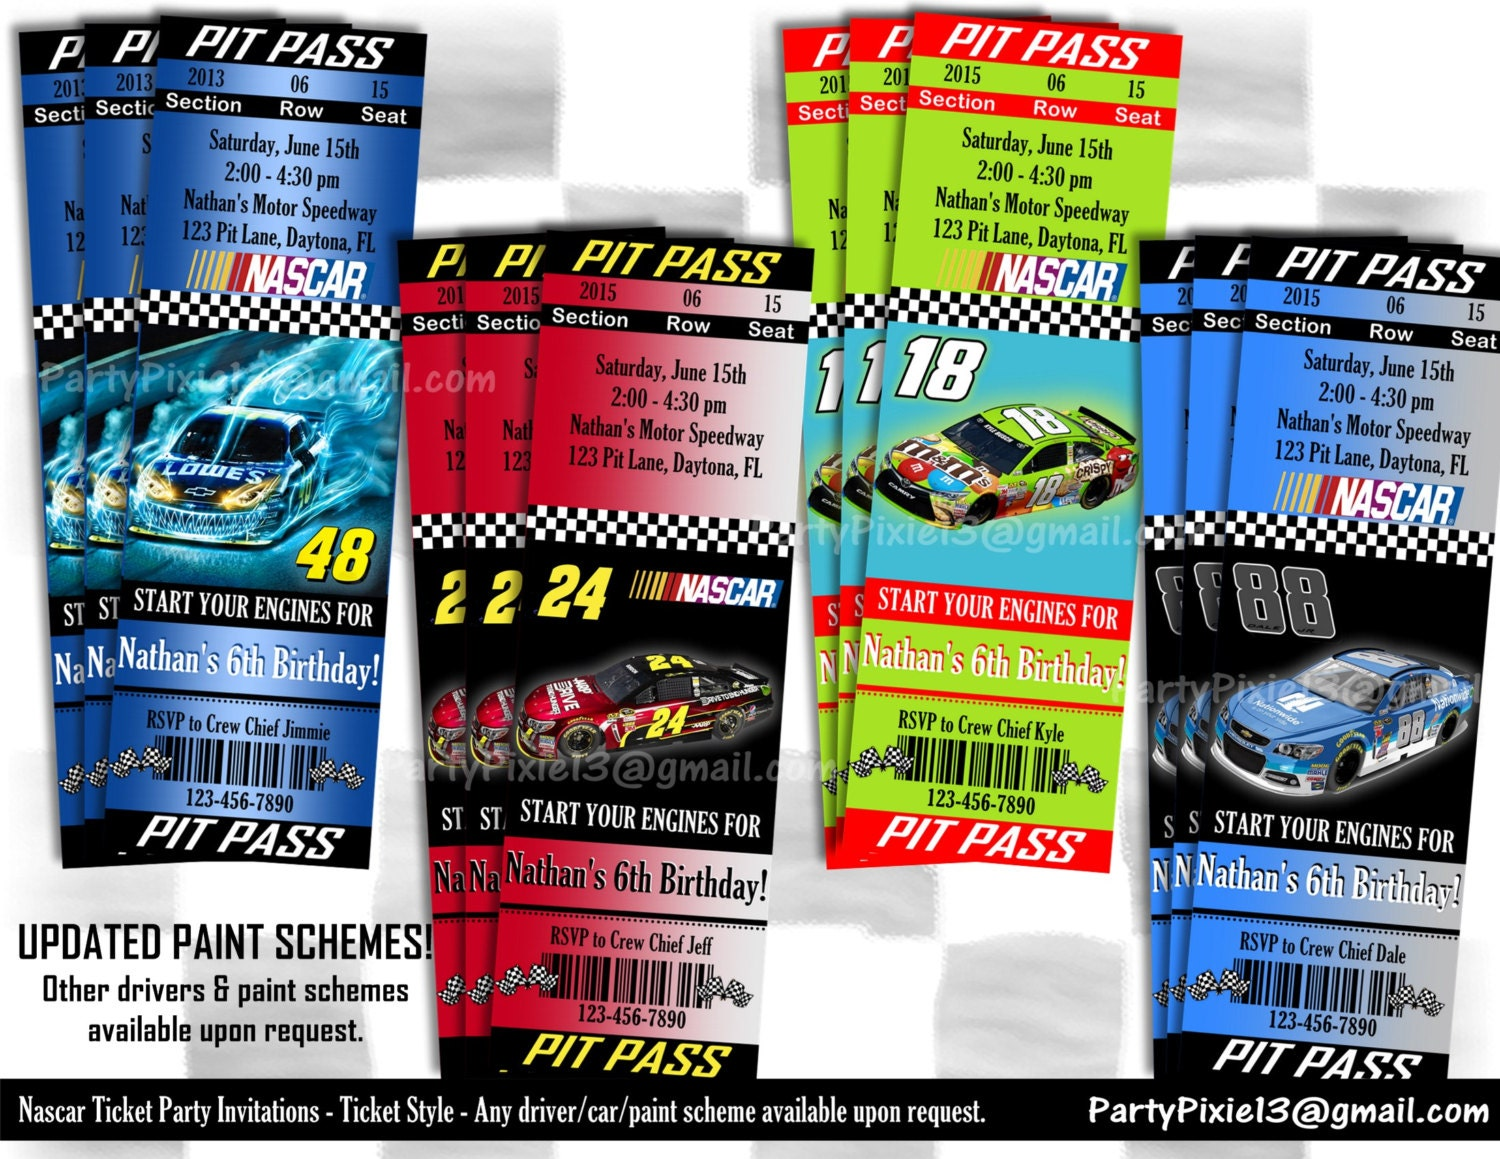 Nascar Ticket Party Invitation Ticket Style Pit Pass